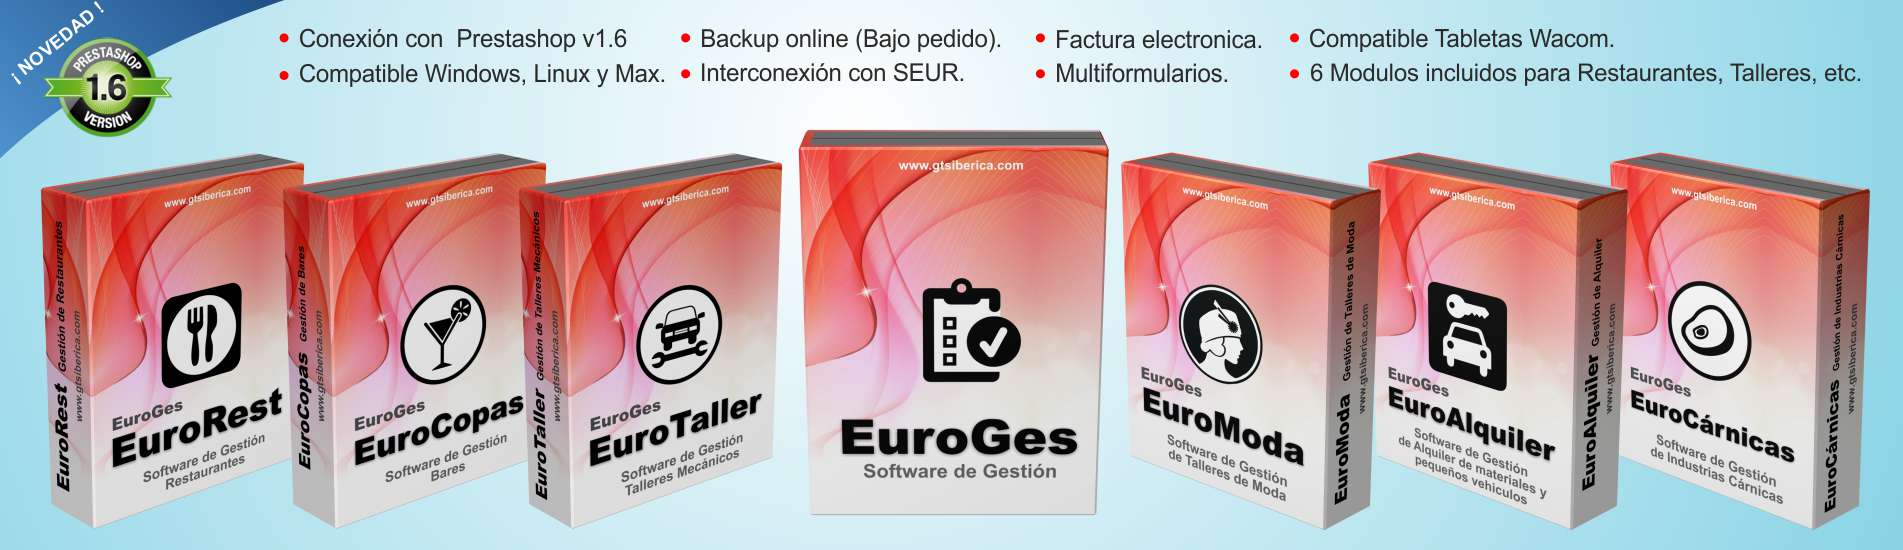 productos euroges 2014